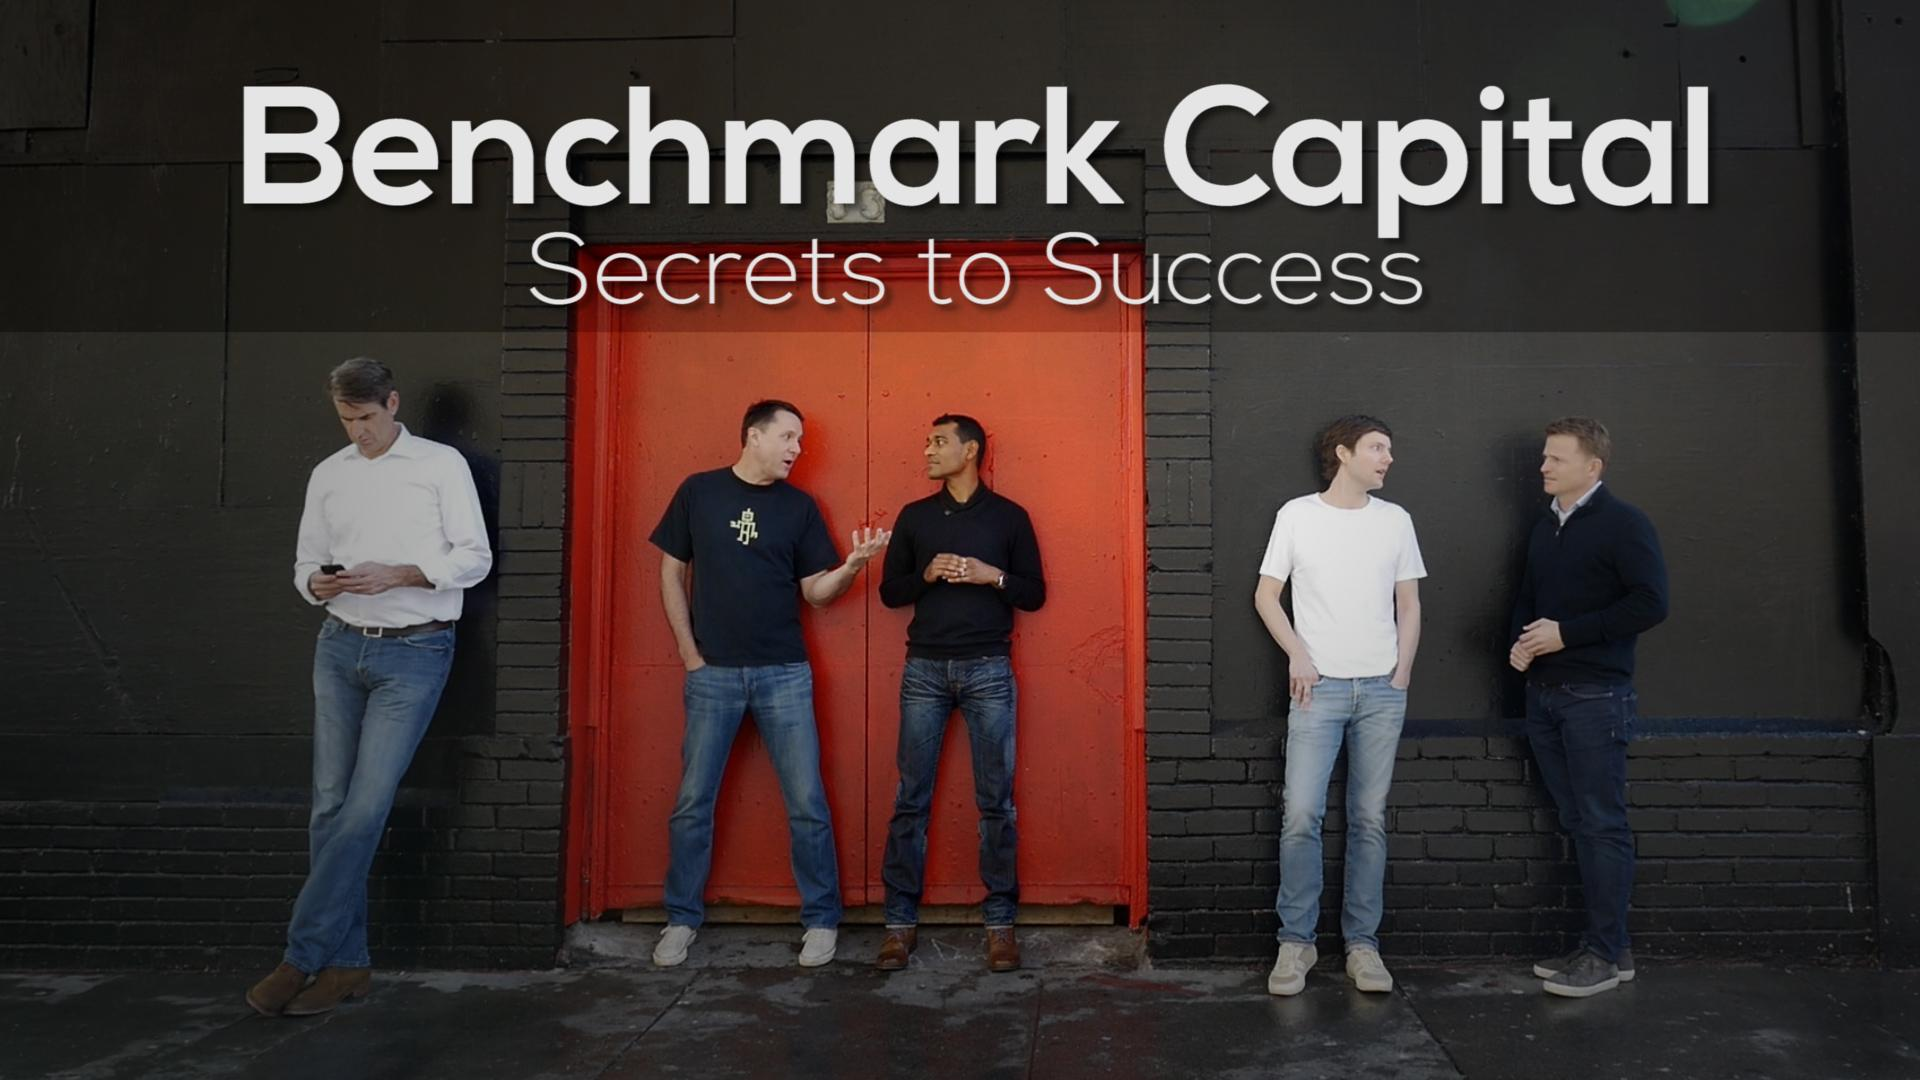 Benchmark Capital: Secrets To Success